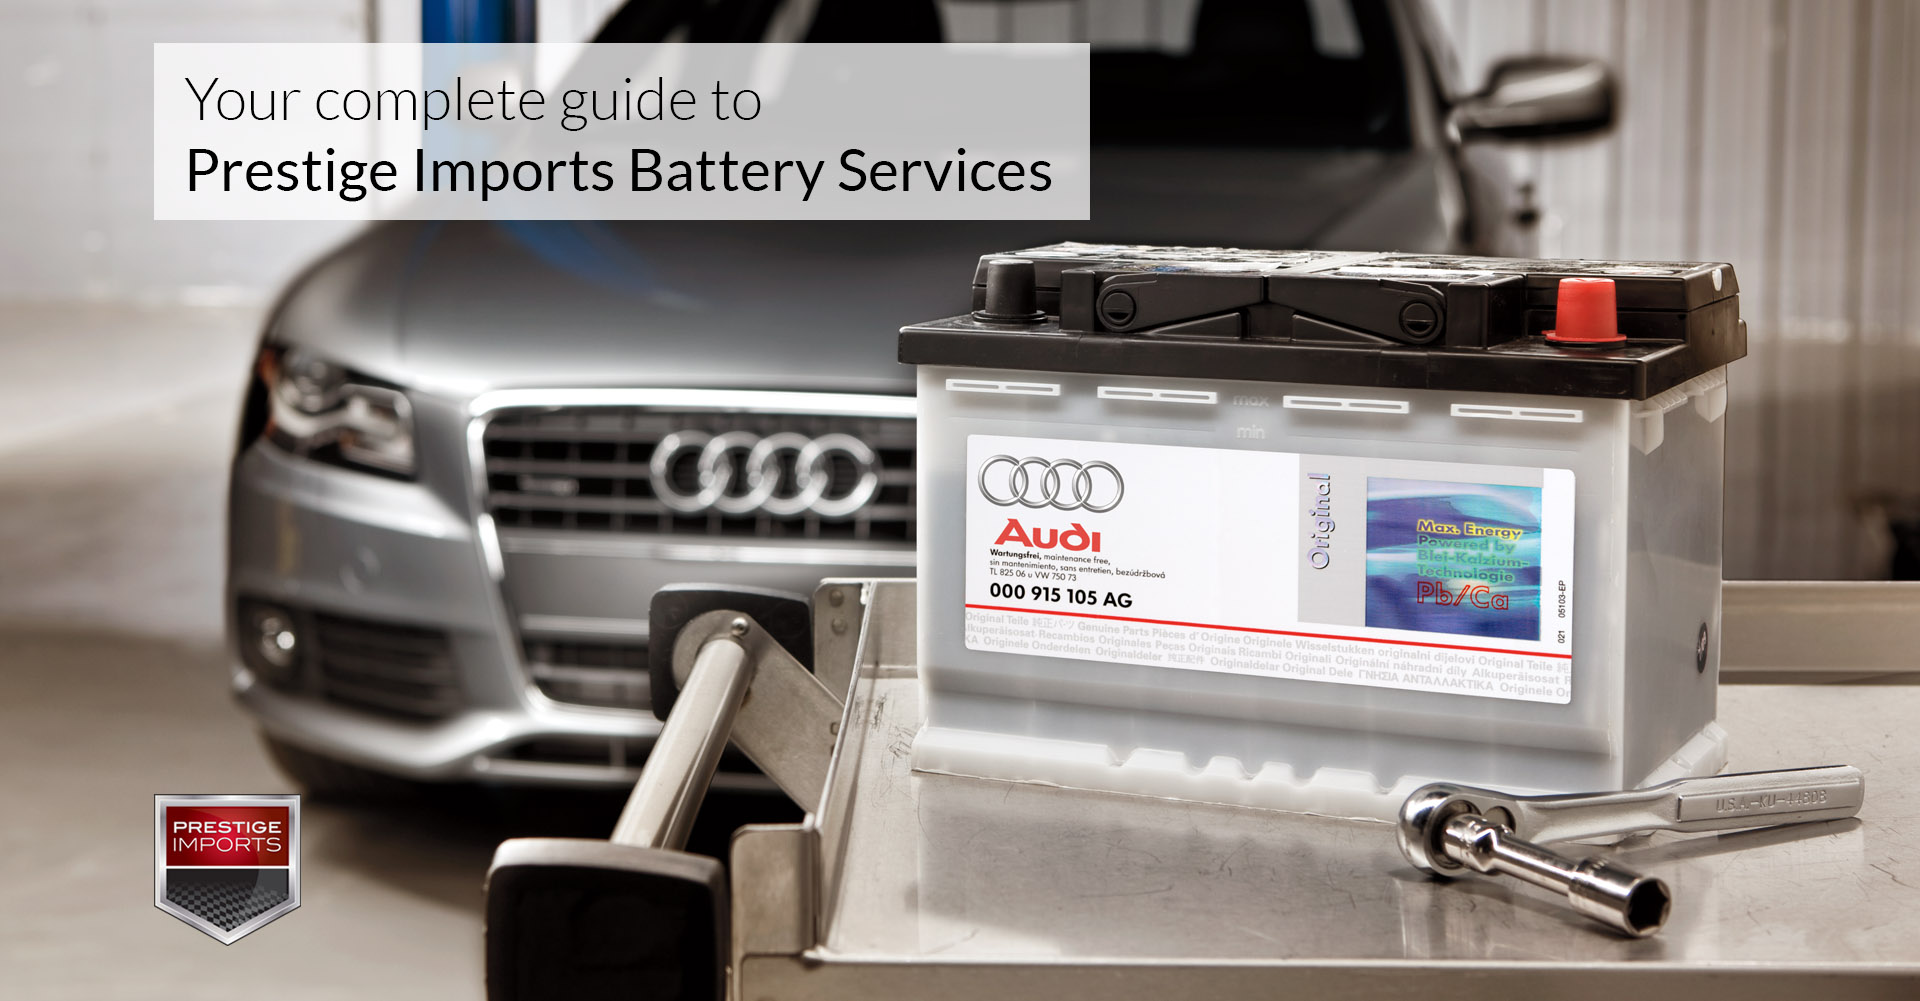 2014 Audi A4 Fuse Box Your Guide To Porsche And Audi Battery Services In Denver